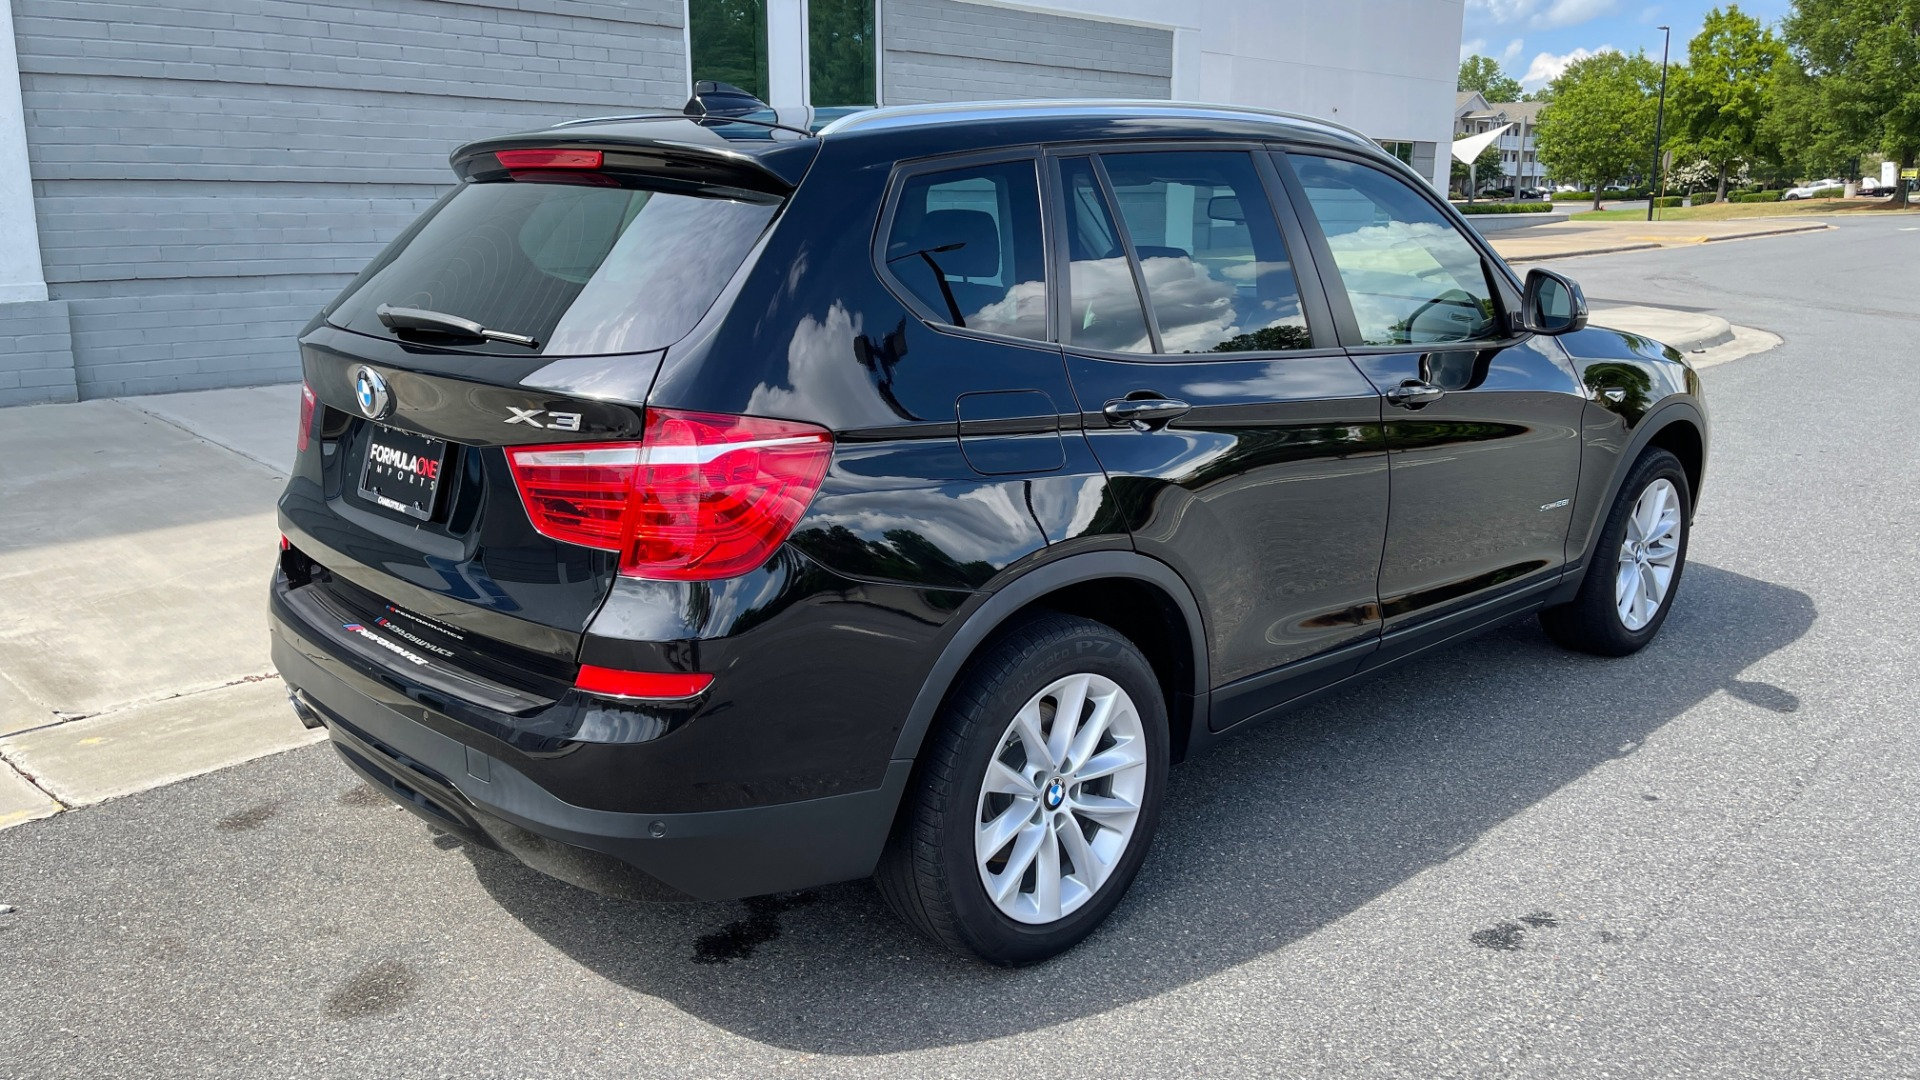 Used 2017 BMW X3 SDRIVE28I / DRVR ASST PKG / HTD STS / REARVIEW / 18IN WHEELS for sale $24,995 at Formula Imports in Charlotte NC 28227 2